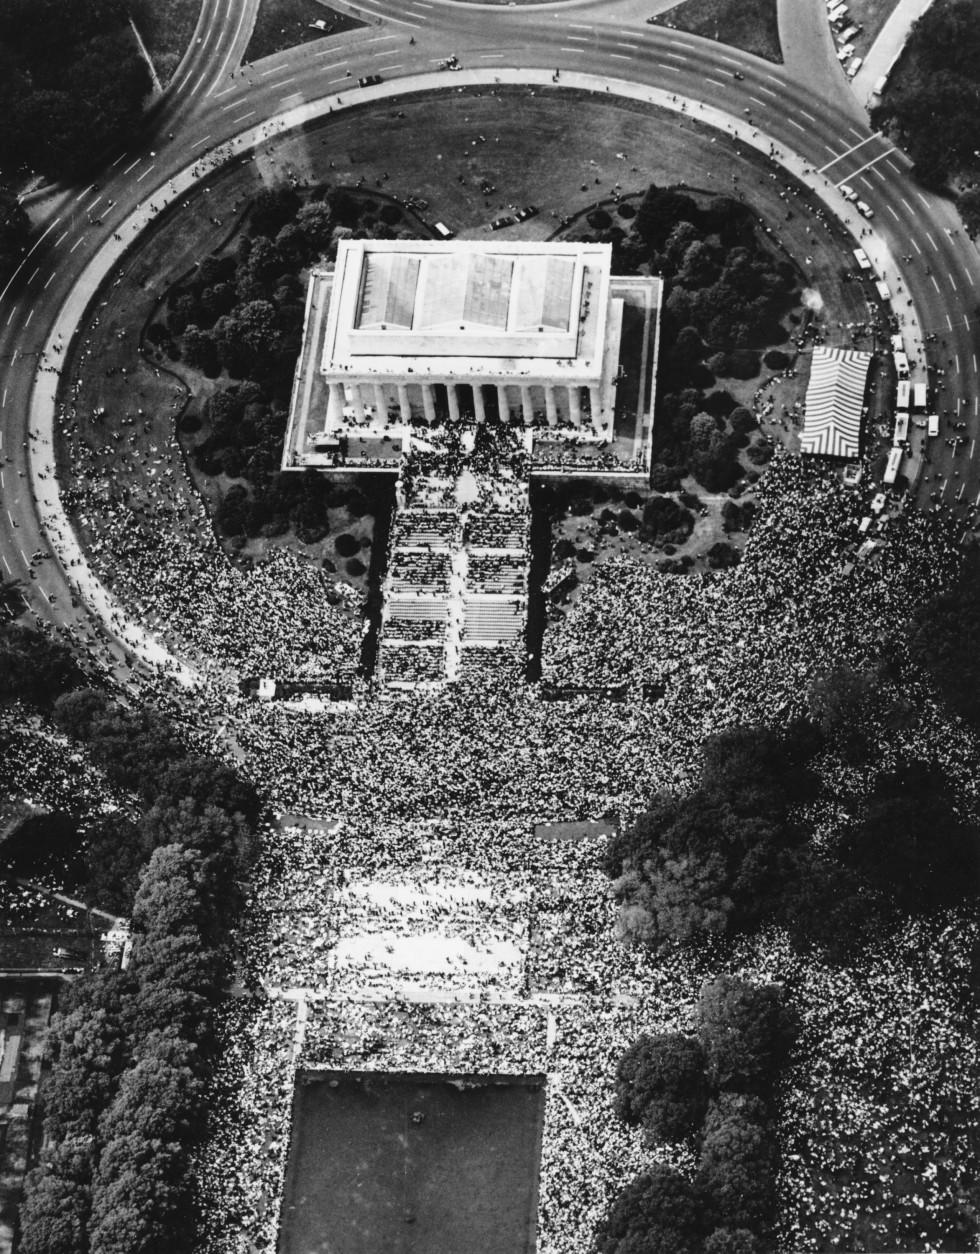 An aerial view from a helicopter shows the March on Washington at Lincoln Memorial in D.C. on Aug. 28, 1963.  Over 250,000 people fighting for pending civil rights laws, such as desegregation, gathered at the Lincoln Memorial after a sign-carrying parade from the Washington Monument grounds.   (AP Photo)